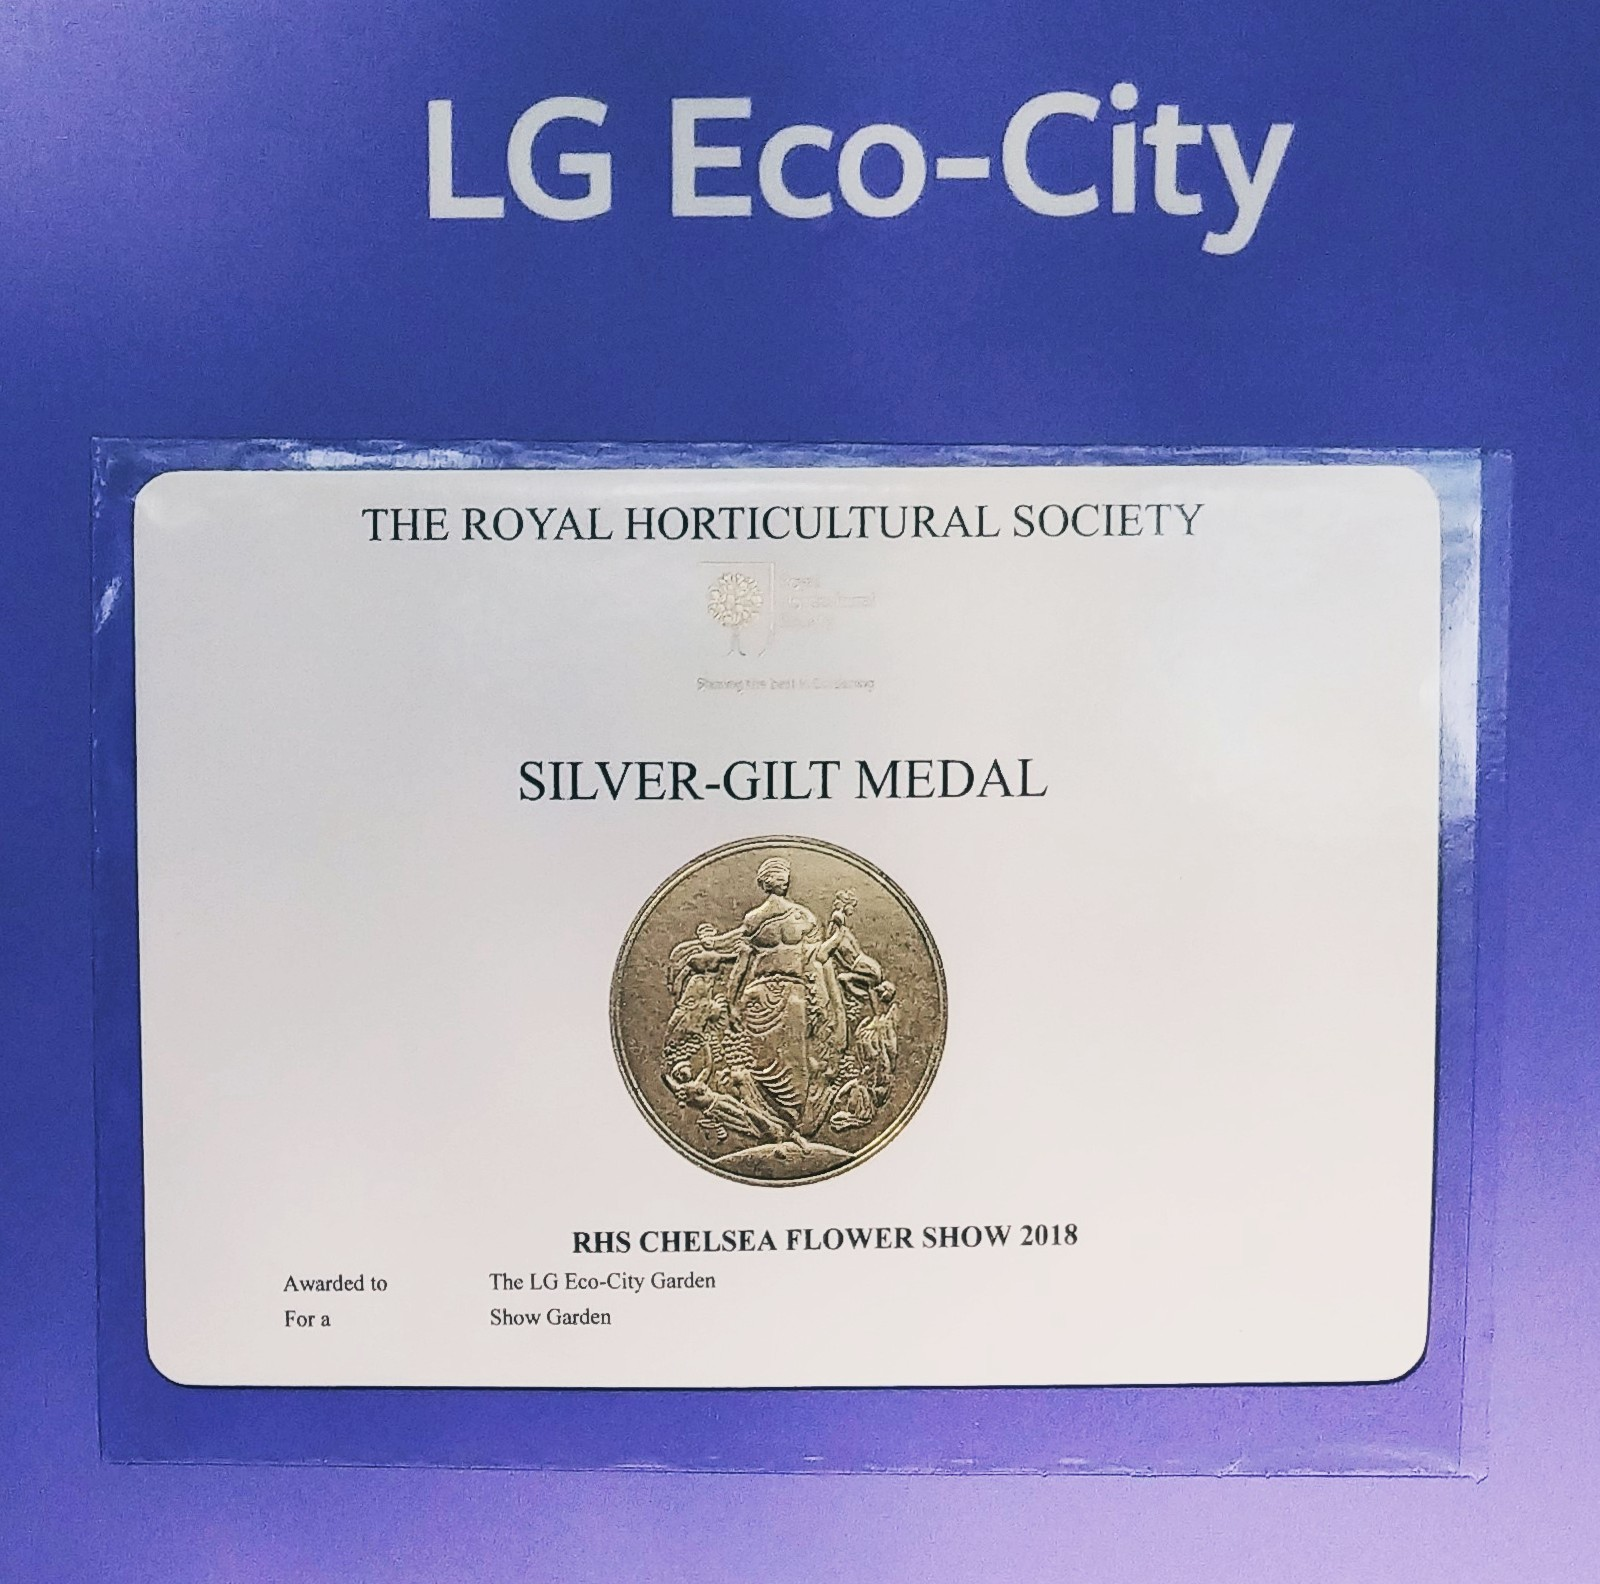 The Silver-gilt Medal awarded to LG Eco-City Garden at RHS Chelsea Flower Show 2018